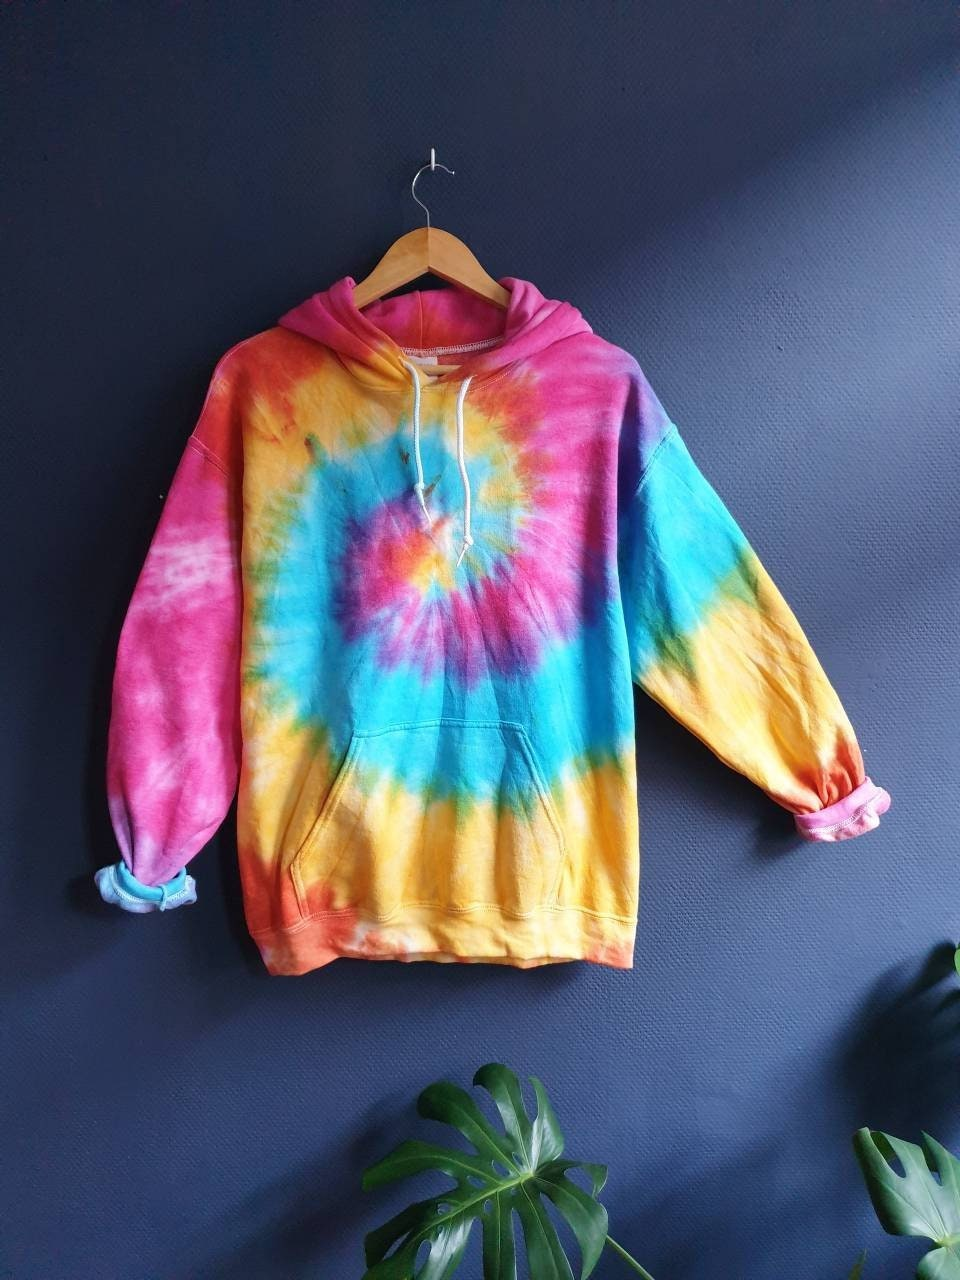 Network For Shirts Of Sale Oregon Tie Dye Tumblr « Alzheimer's 92WHEIYD